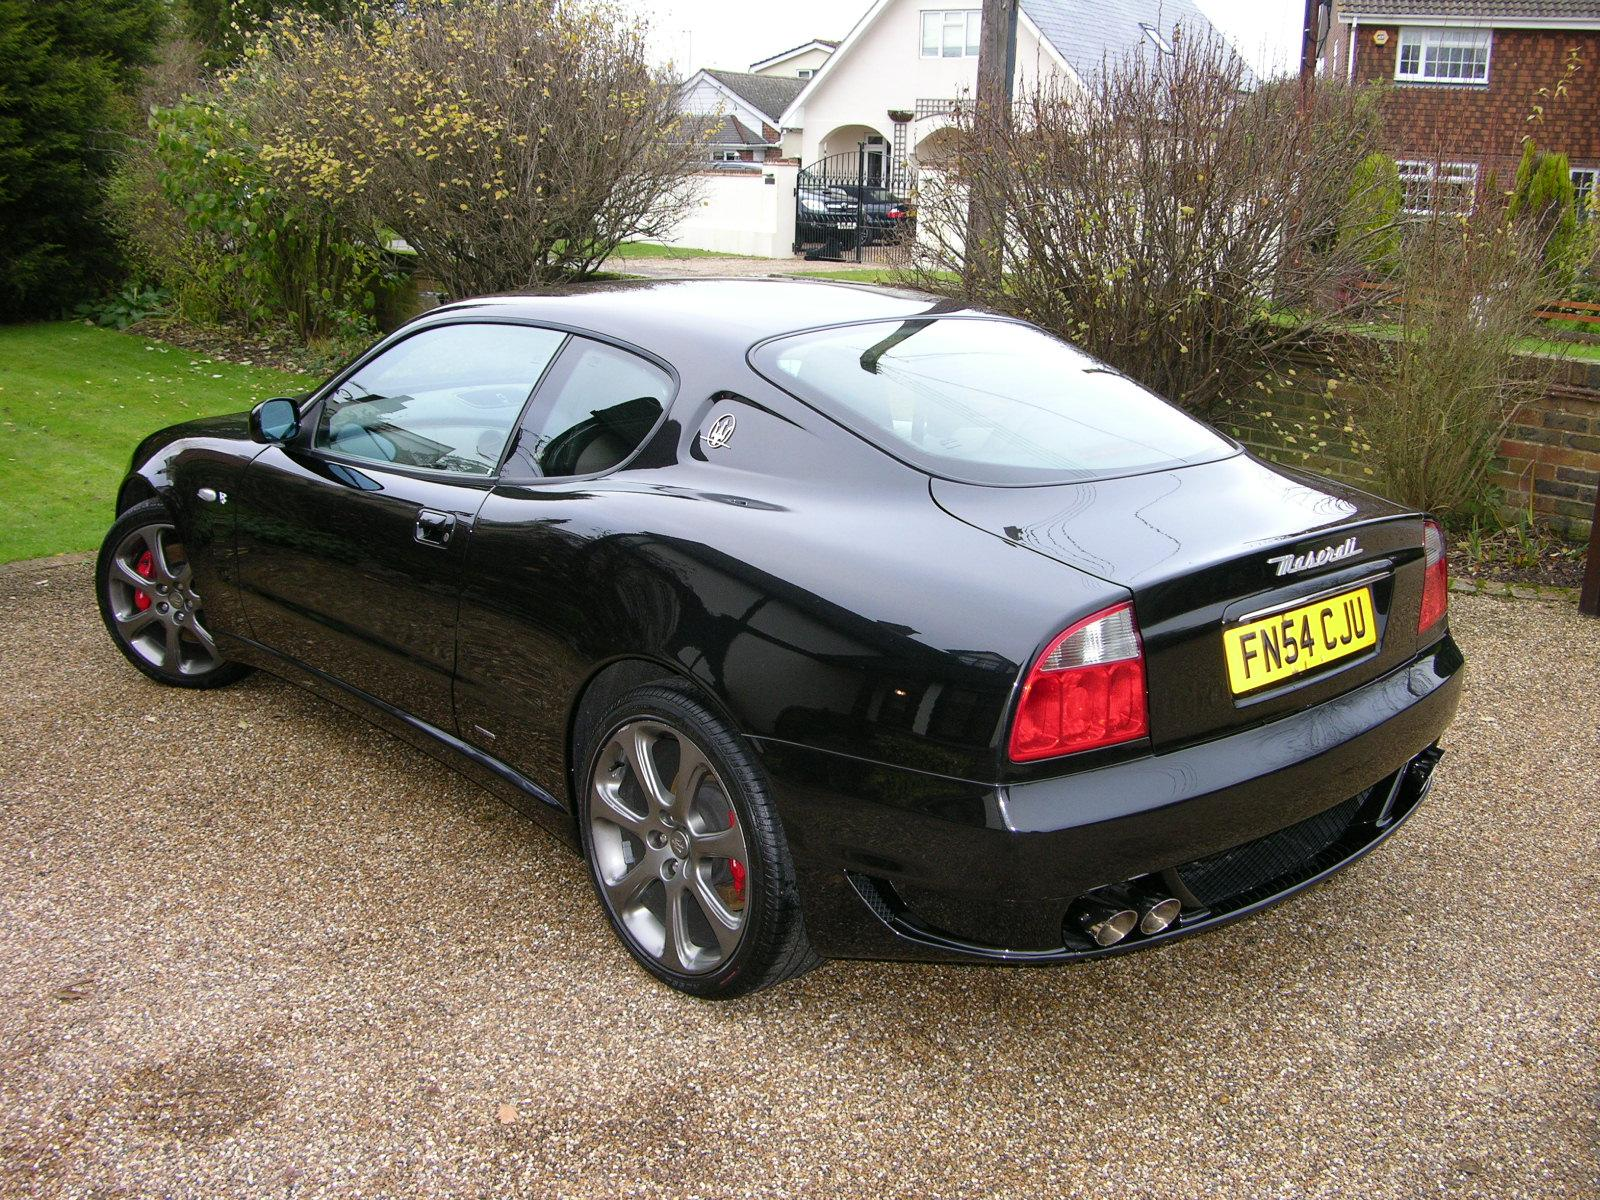 http://upload.wikimedia.org/wikipedia/commons/a/a0/2005_Maserati_4200_GT_-_Flickr_-_The_Car_Spy_%2817%29.jpg